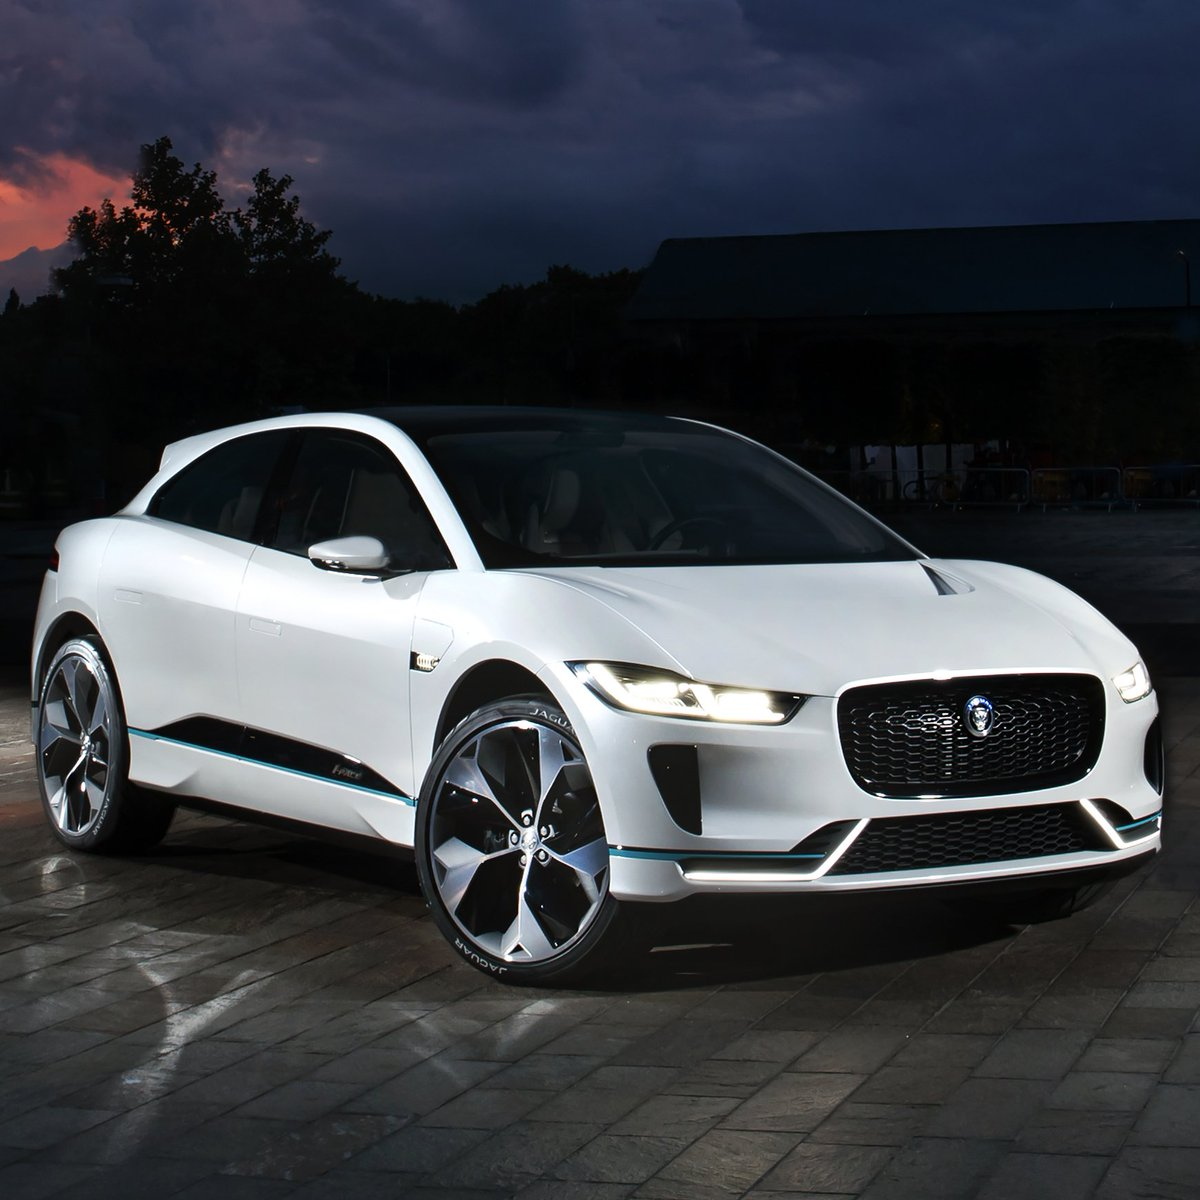 Your White Knight. #IPACE https://t.co/GGWk3wRqR8  The I-PACE signals our commitment to create EVs that are truly exciting driver?s cars. https://t.co/5B3KITrPWH